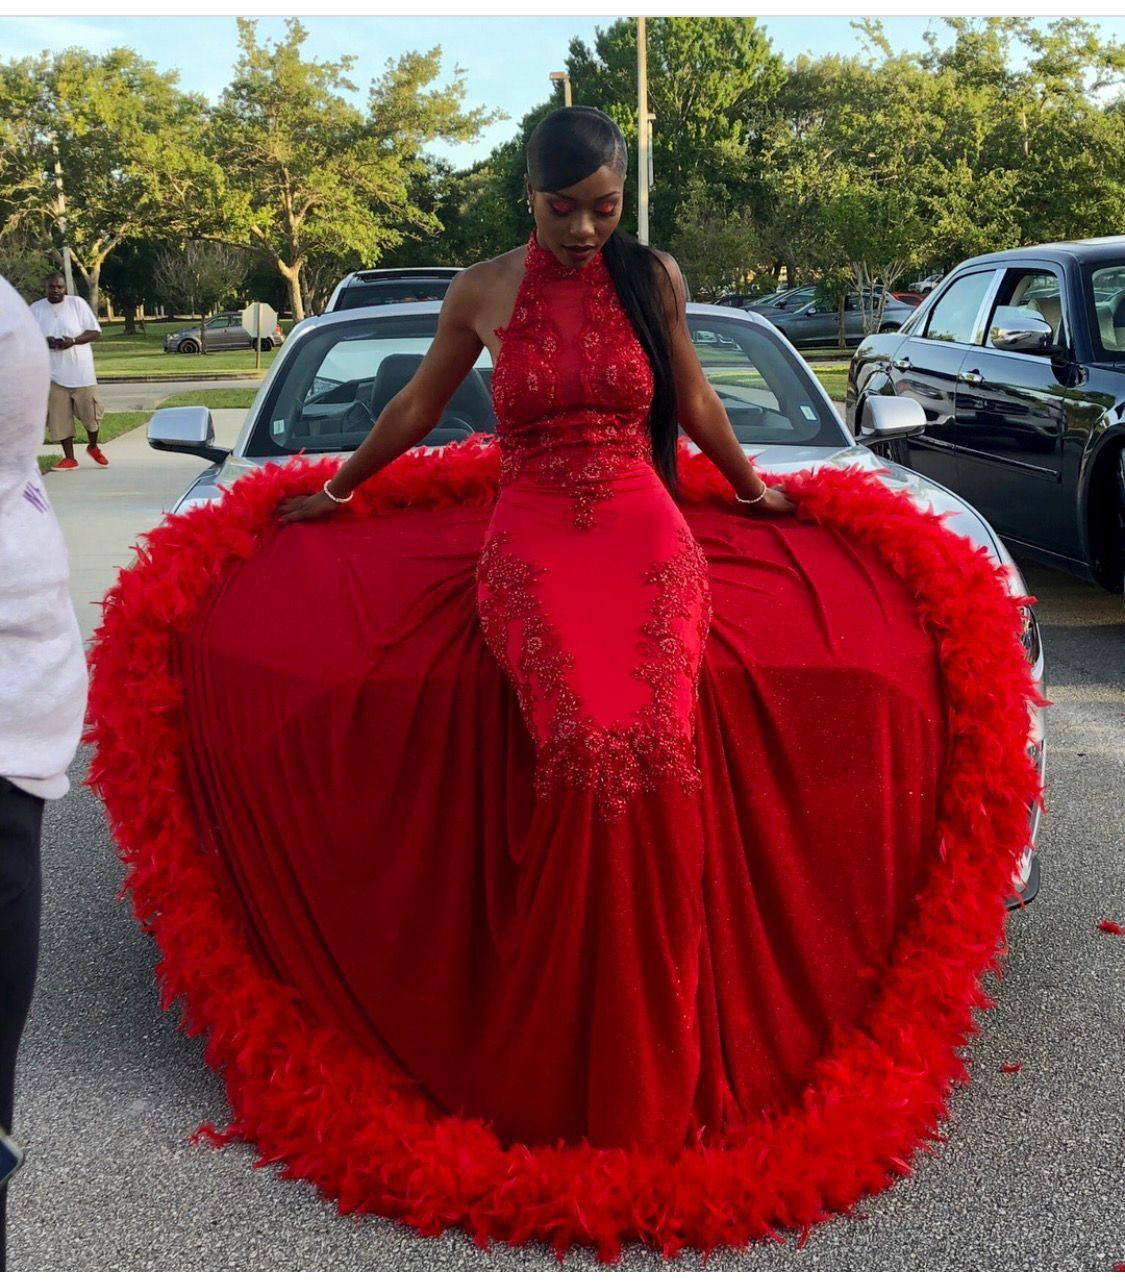 Trending Outfit Ideas for Women, slayed proms, Formal wear